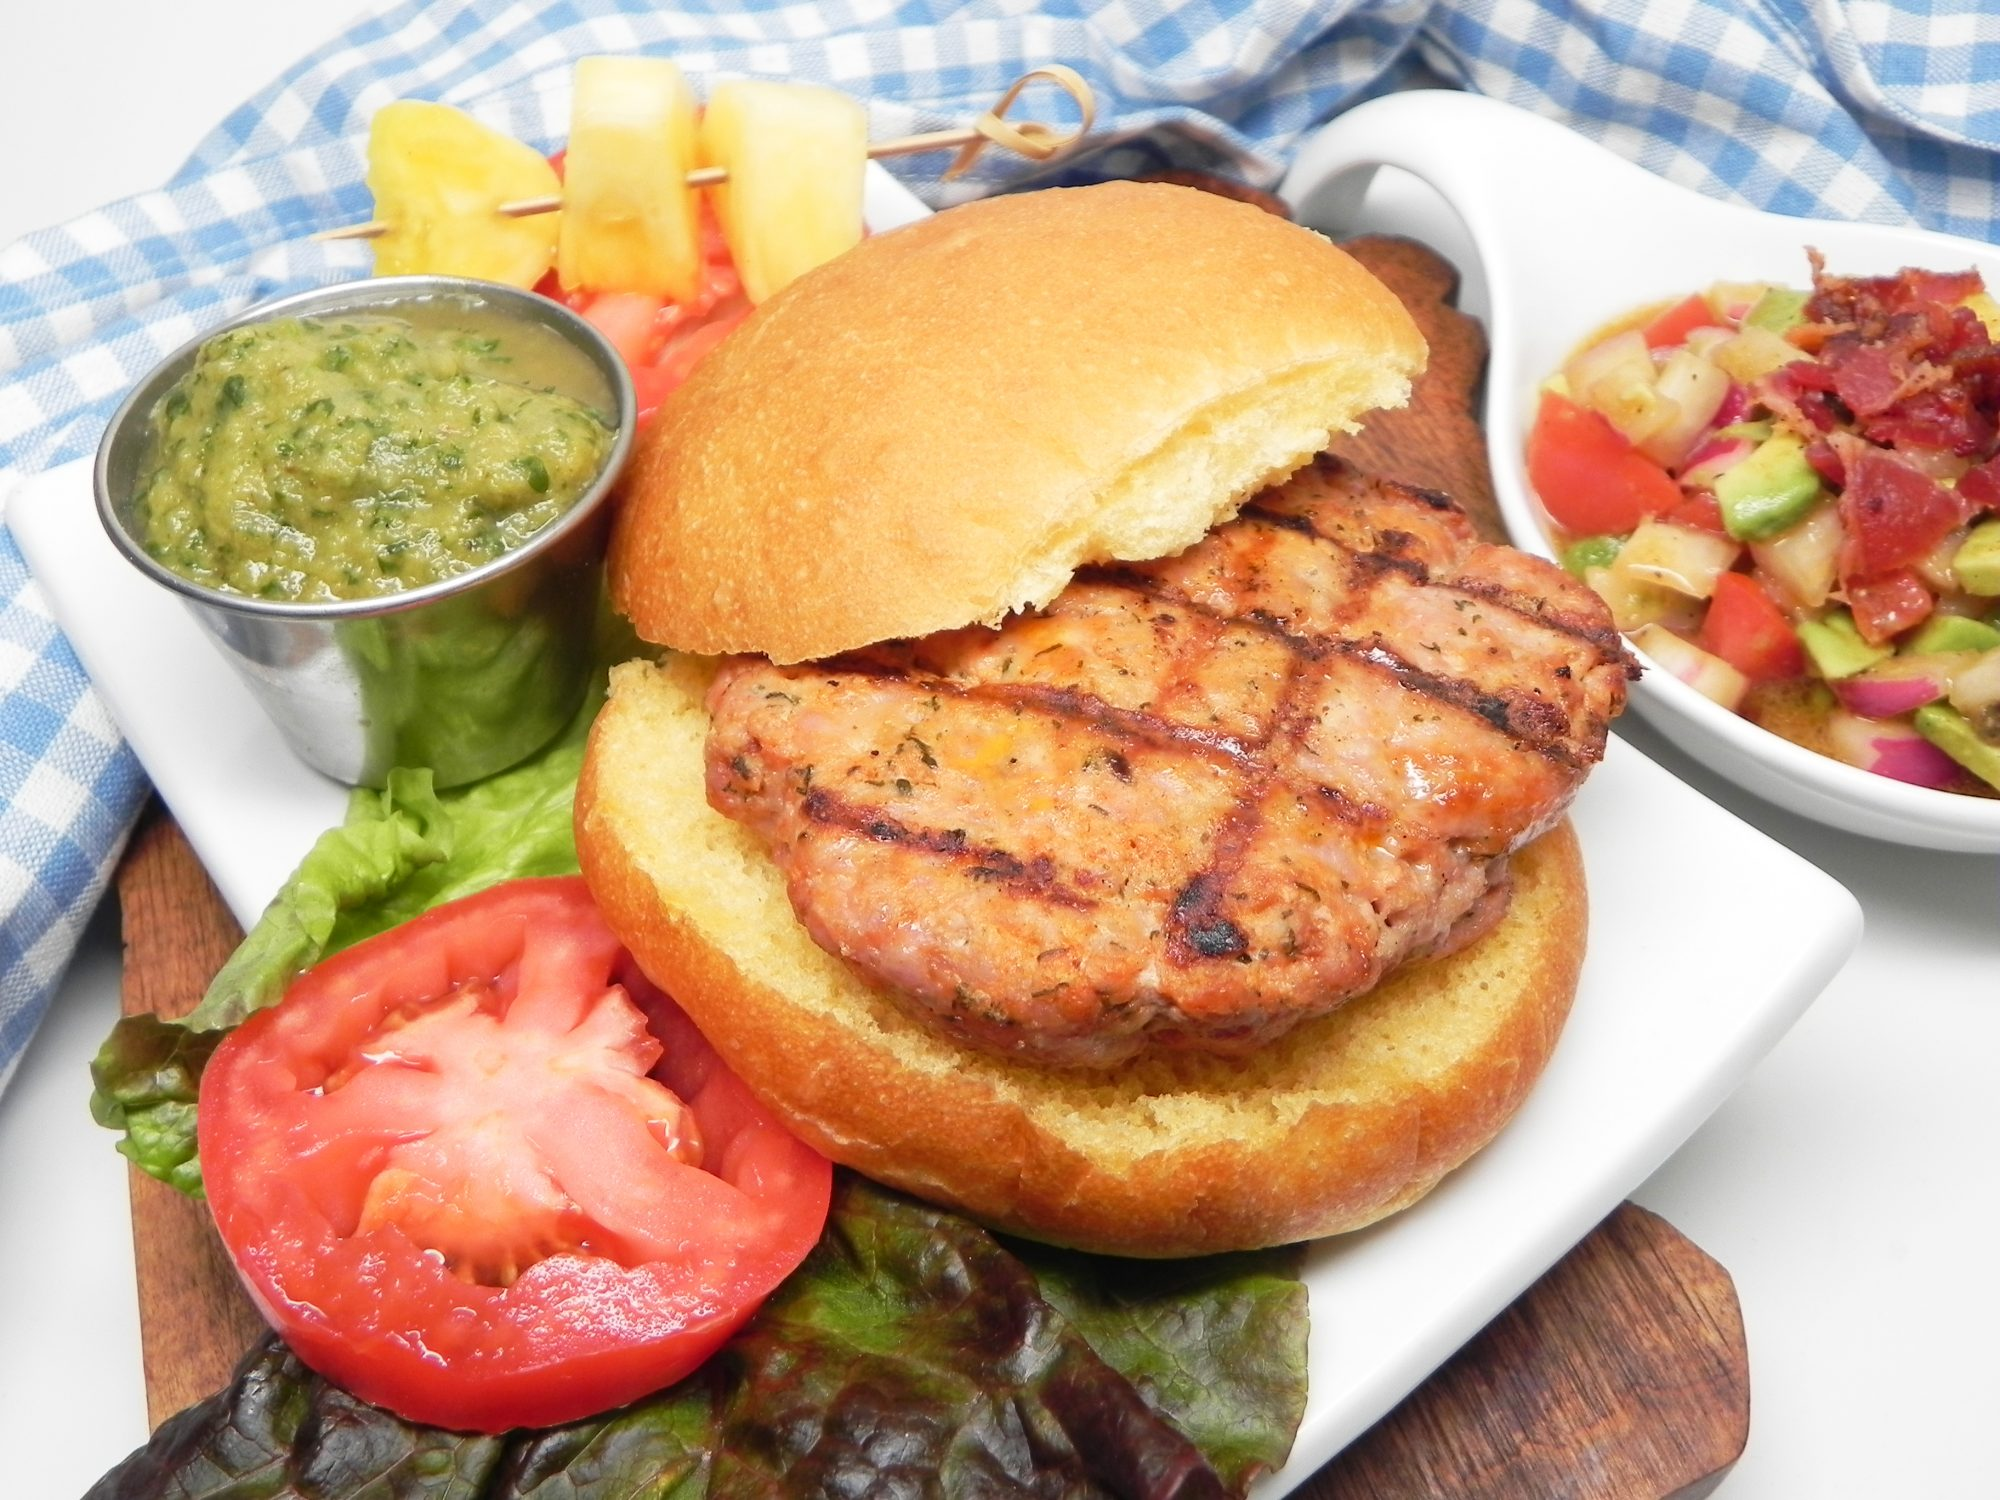 Grilled Pork Burgers with Pineapple Salsa